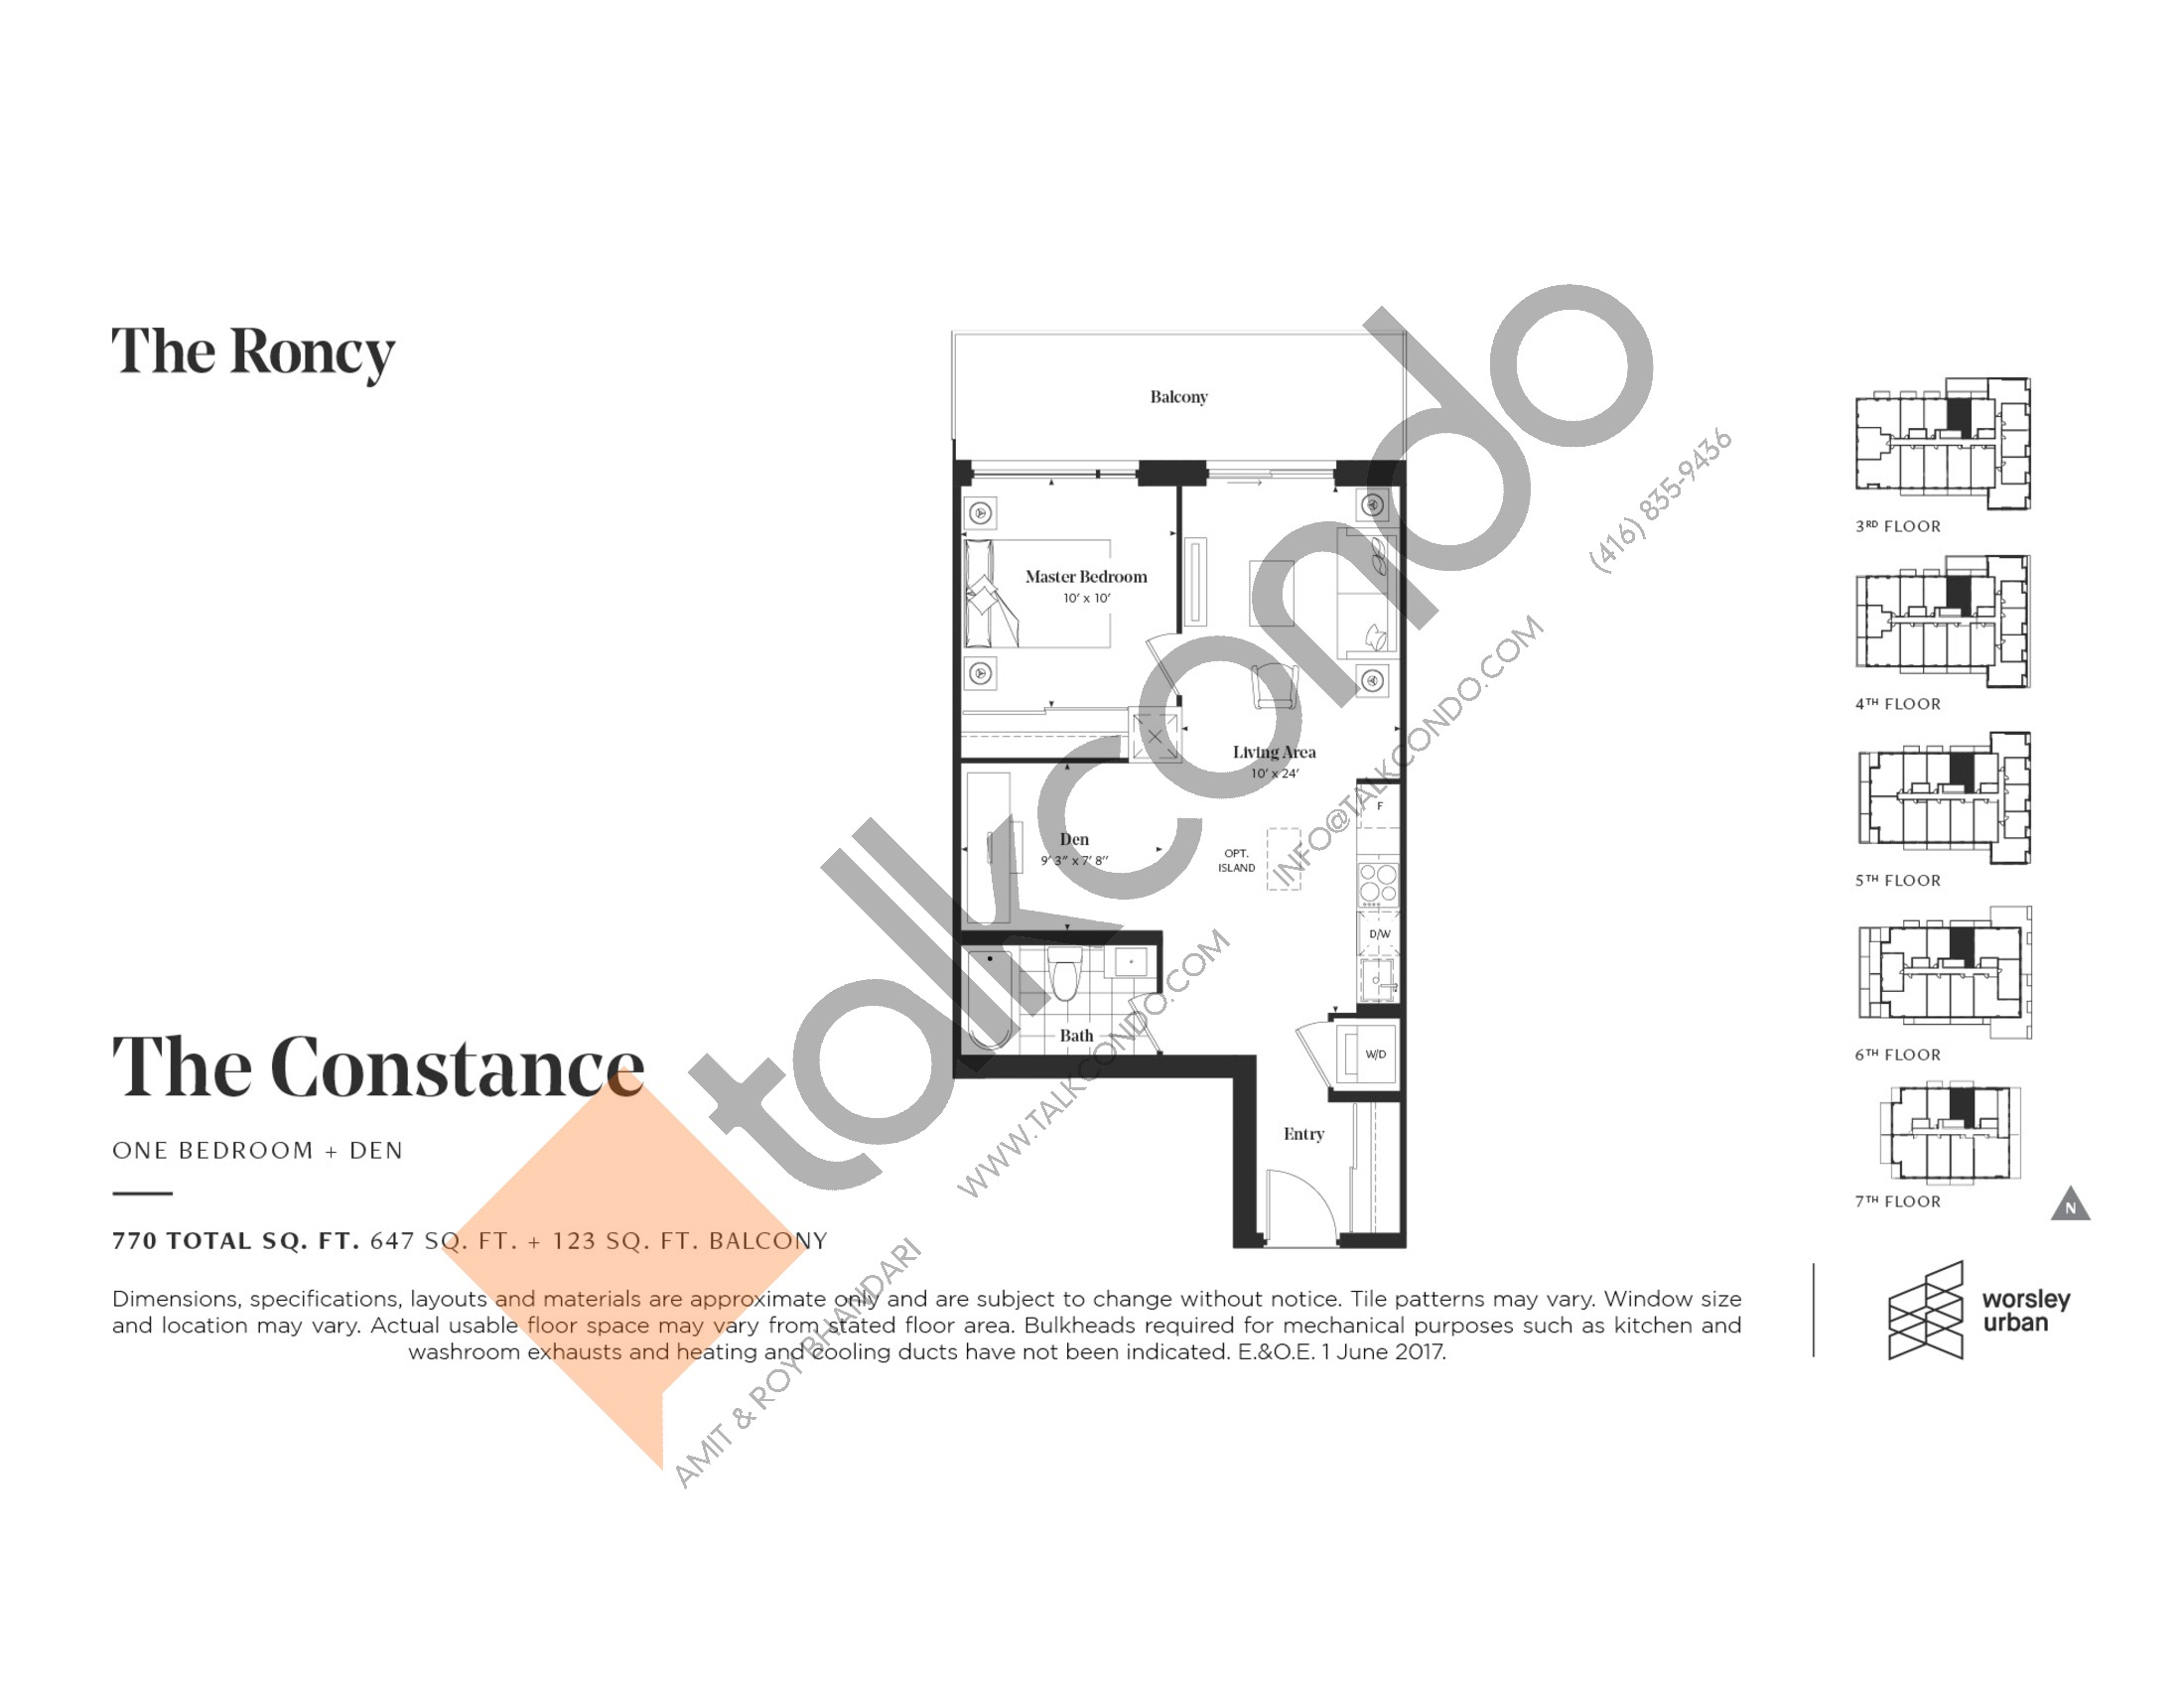 The Constance Floor Plan at The Roncy Condos - 647 sq.ft